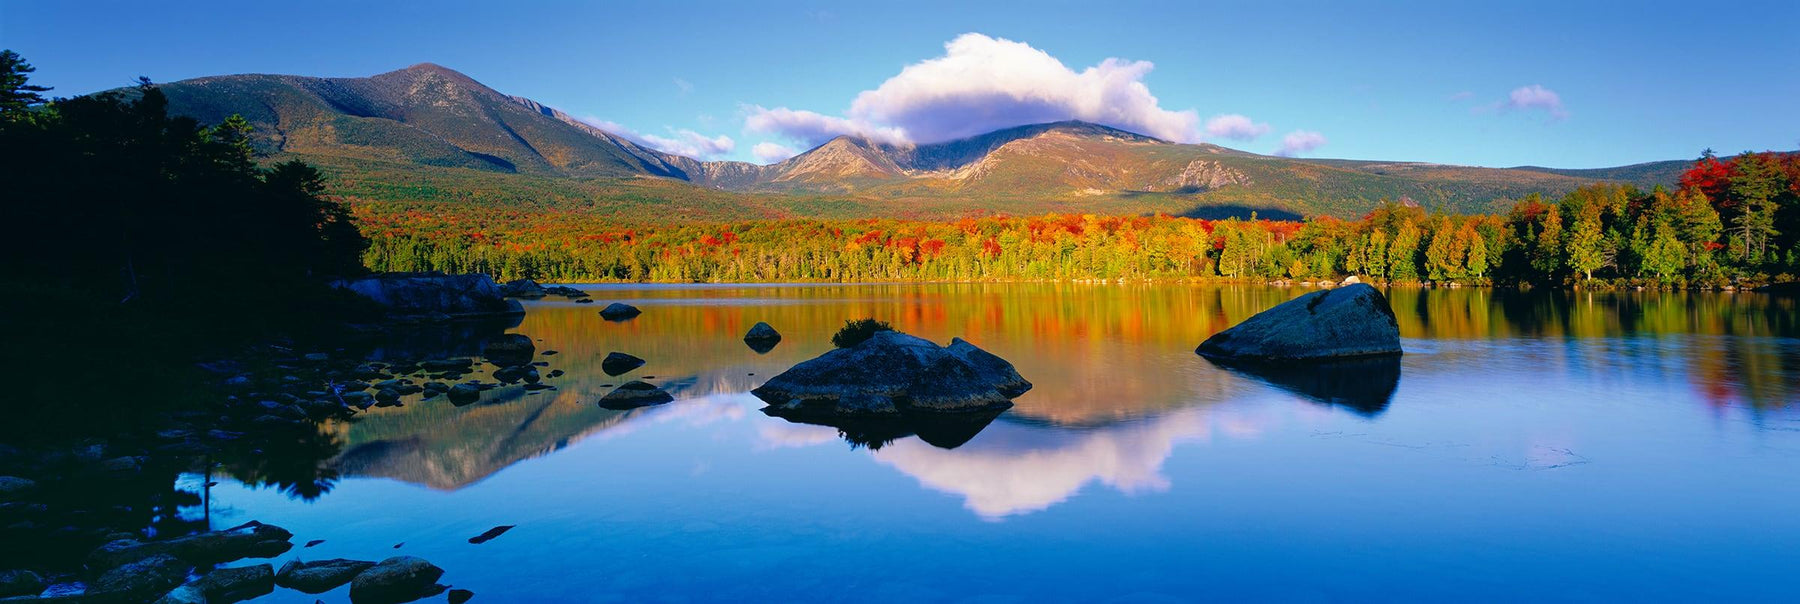 Large rocks near the shore of a lake surrounded by the Autumn colored forest and mountains of Baxter State Park Maine